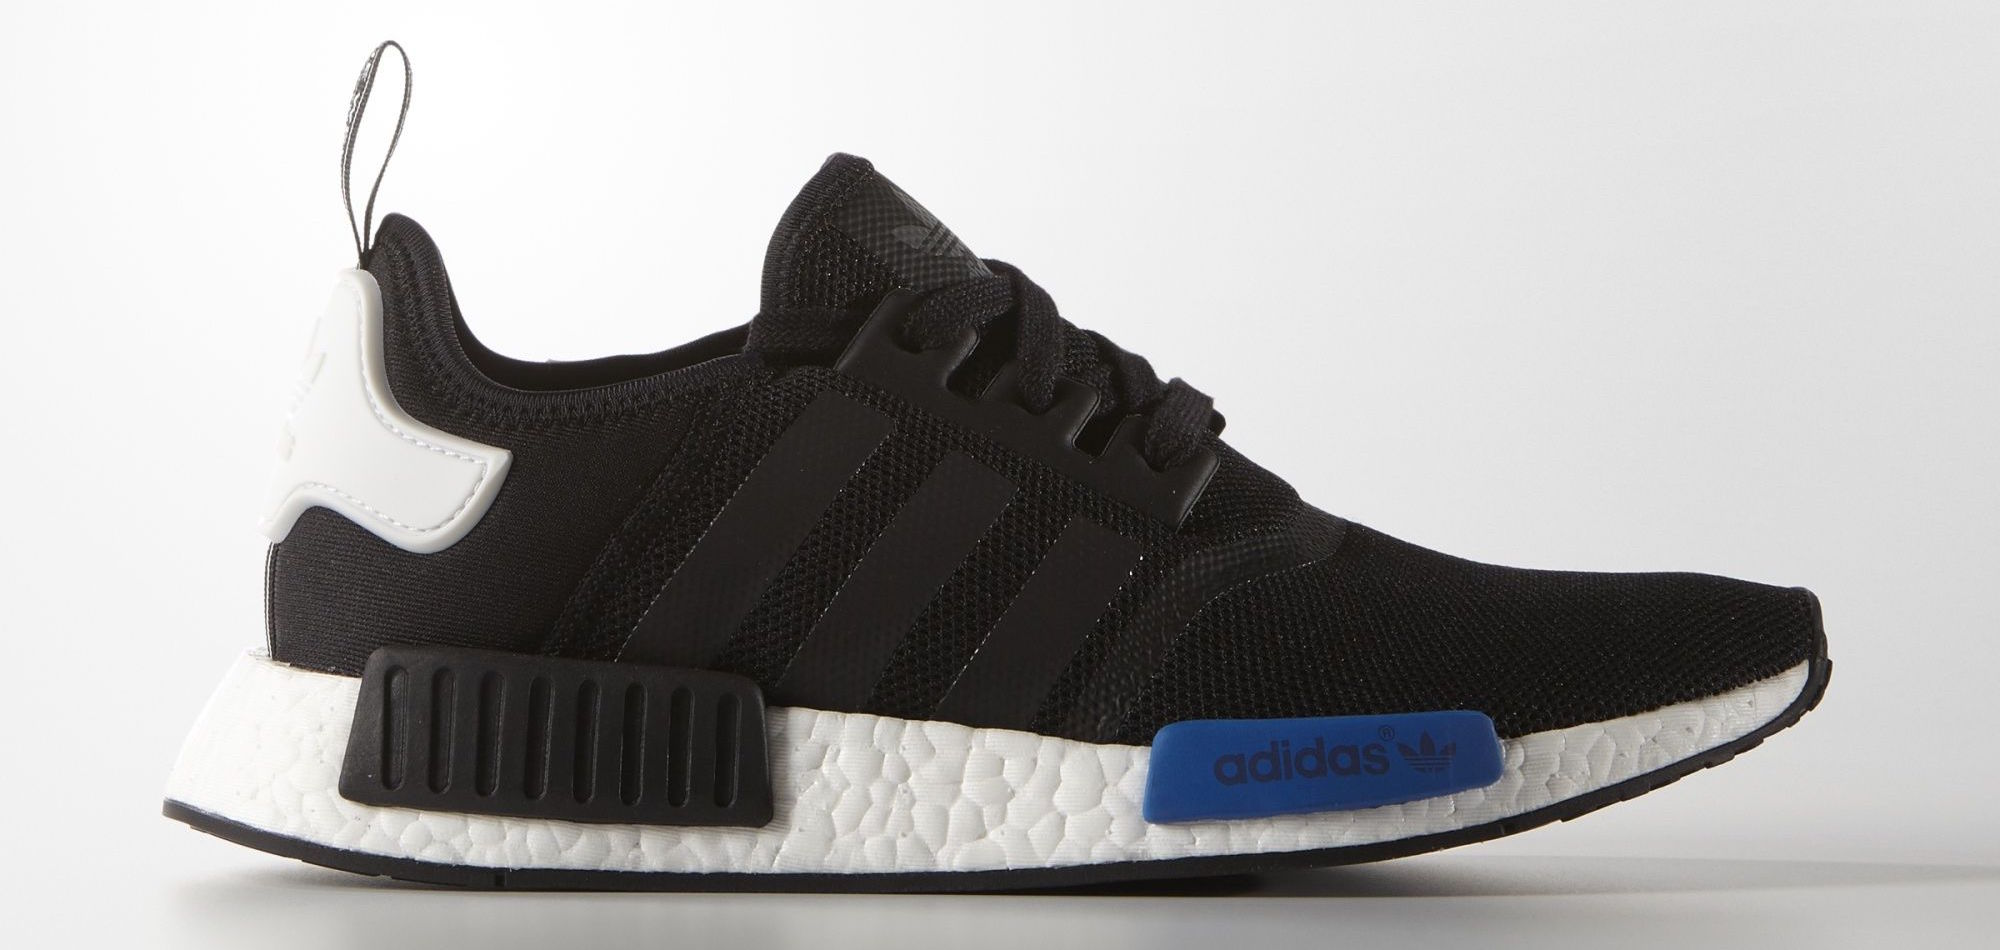 5c28e143b27b0 Adidas Nmd R1 Black Blue Red kenmore-cleaning.co.uk